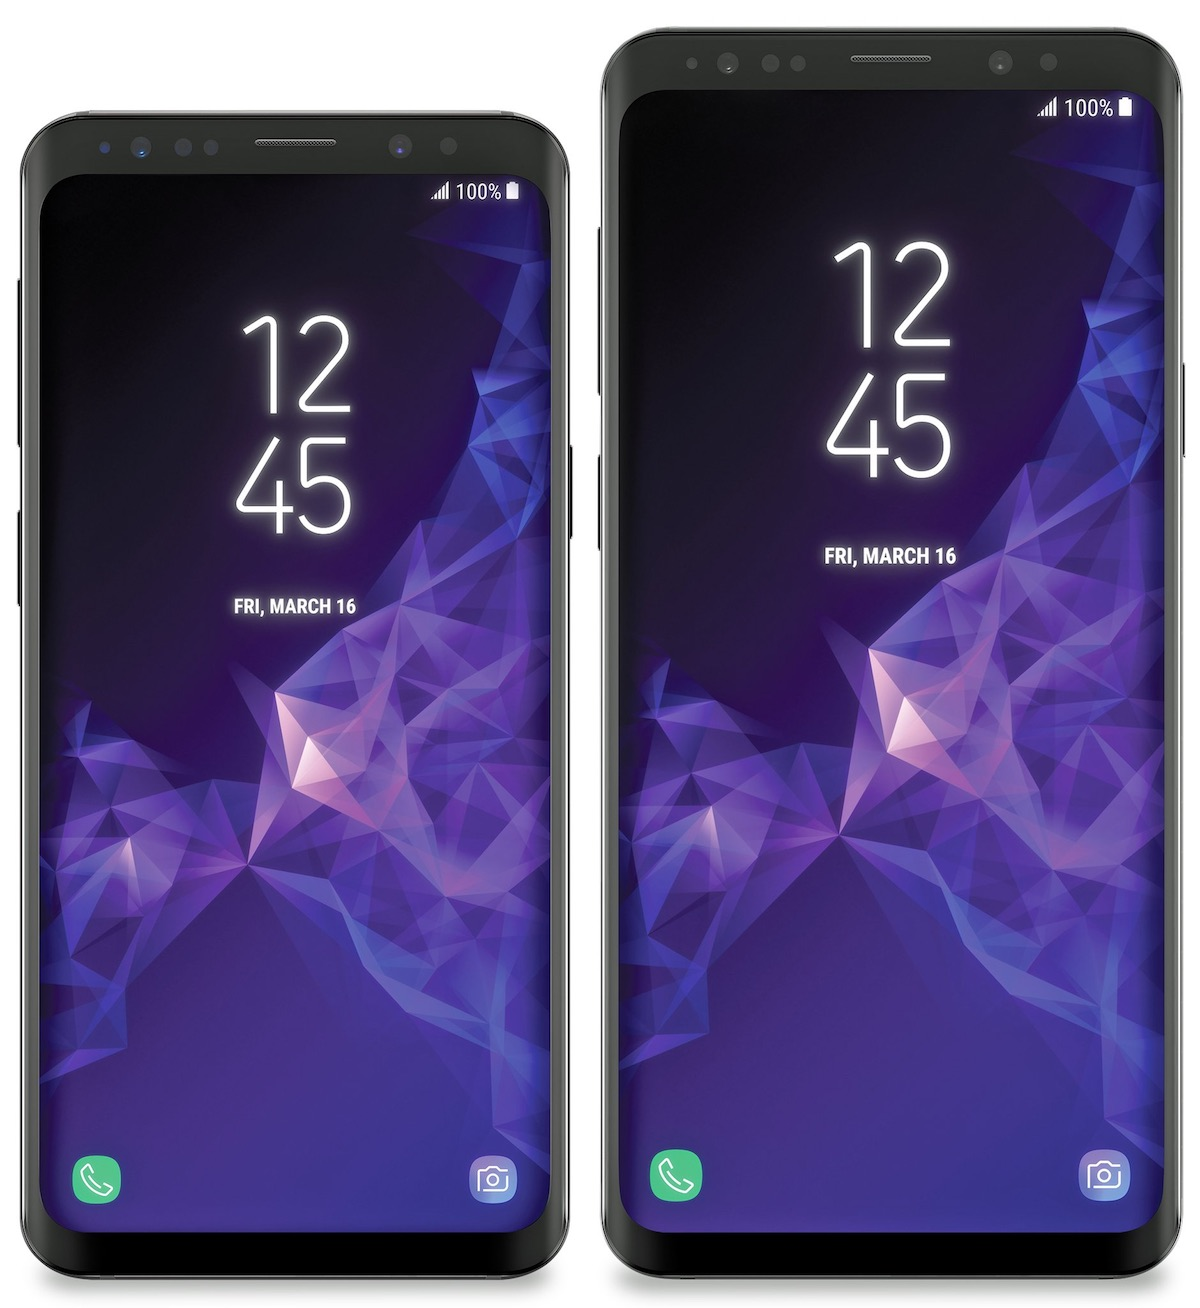 Verizon and Sprint Galaxy S9 and S9 Plus have their OS